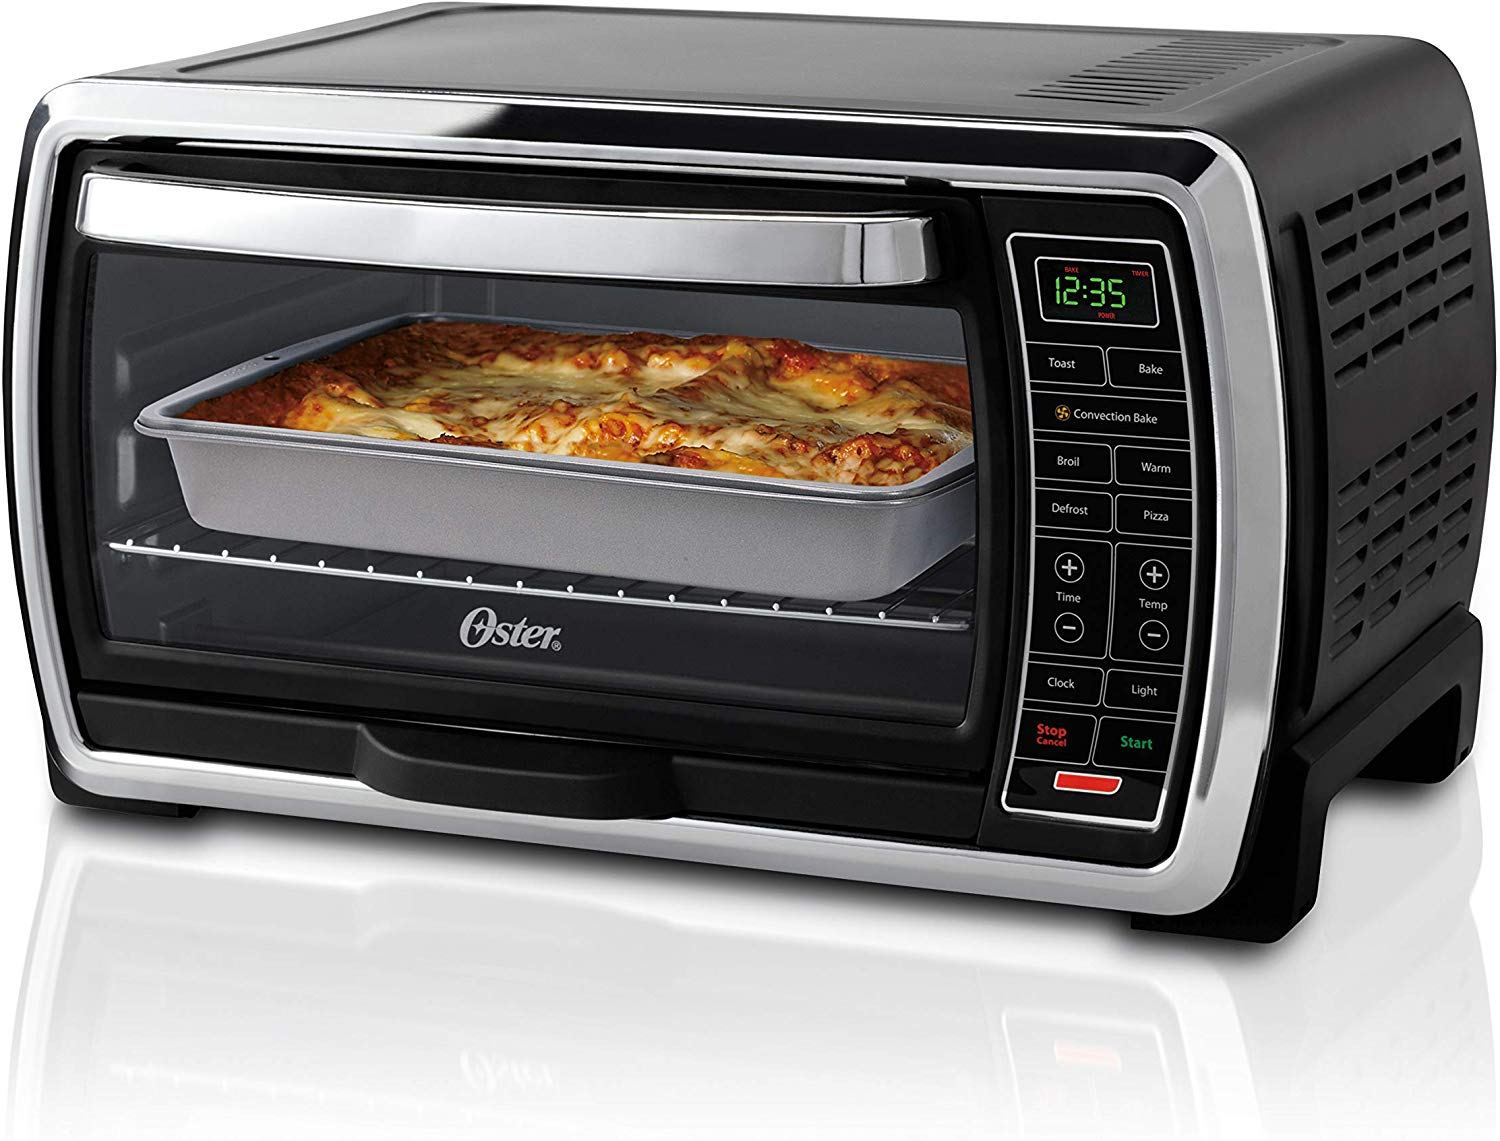 Oster Large Digital Convection Oven